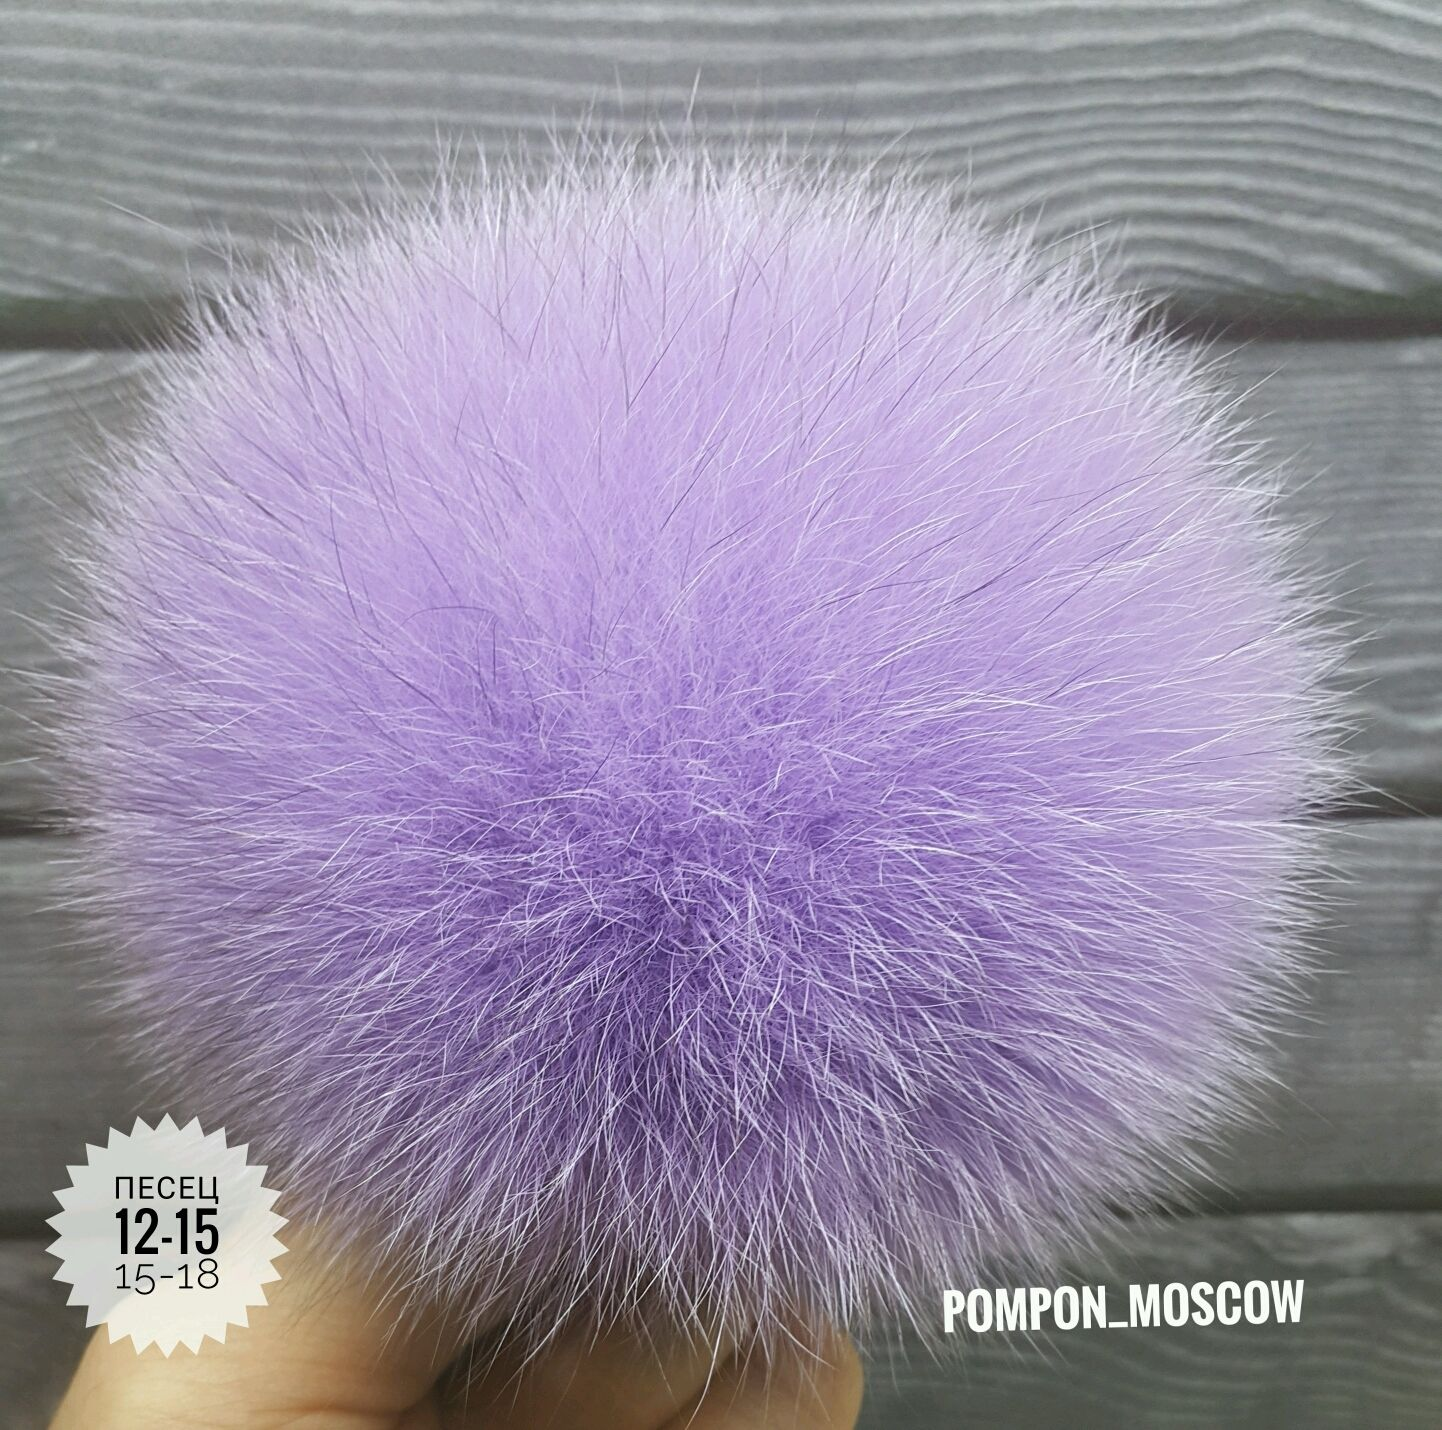 Pompon_moscow